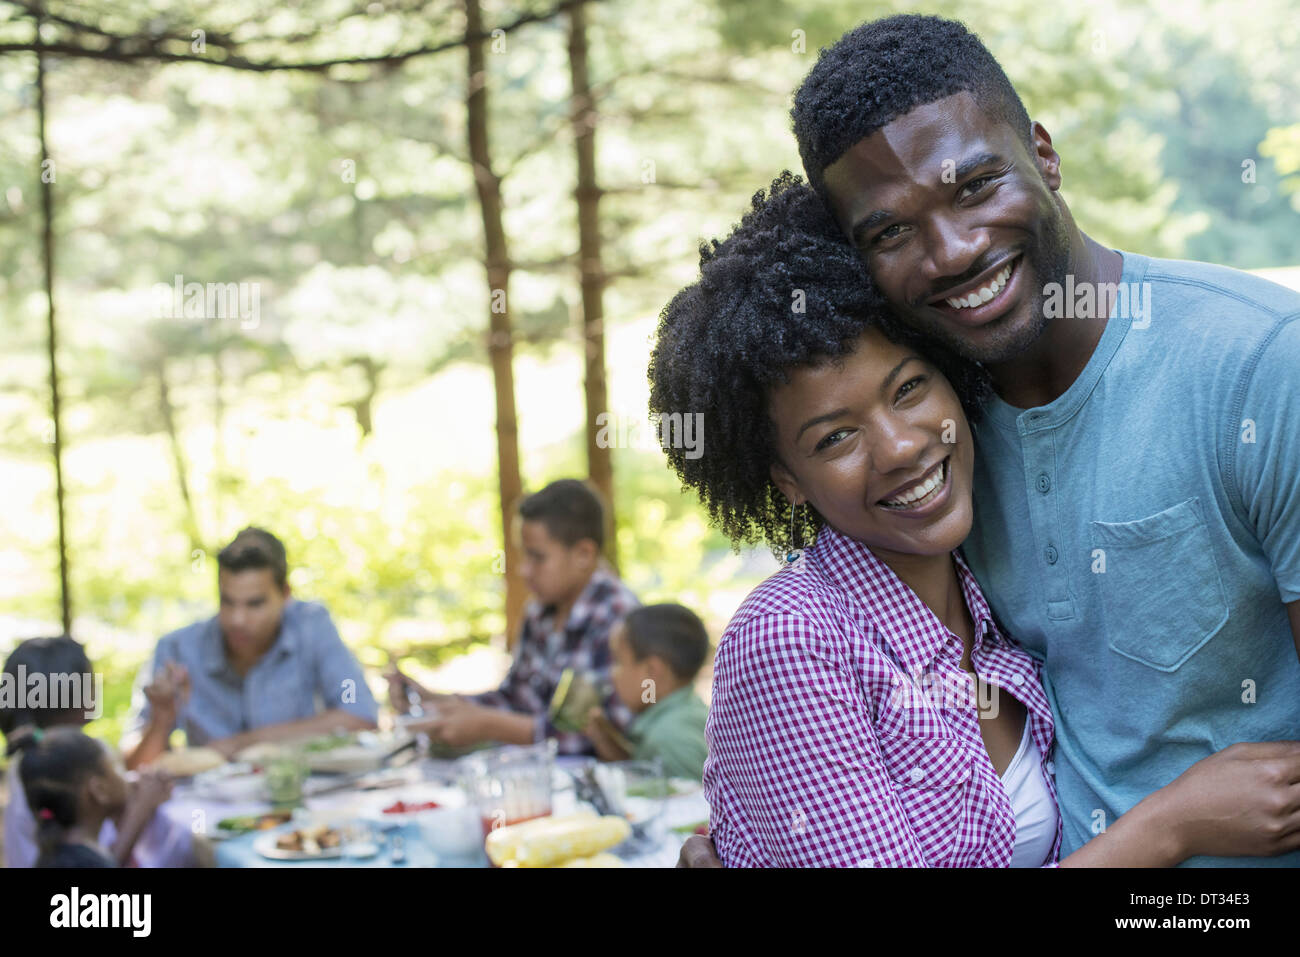 A couple hugging each other - Stock Image